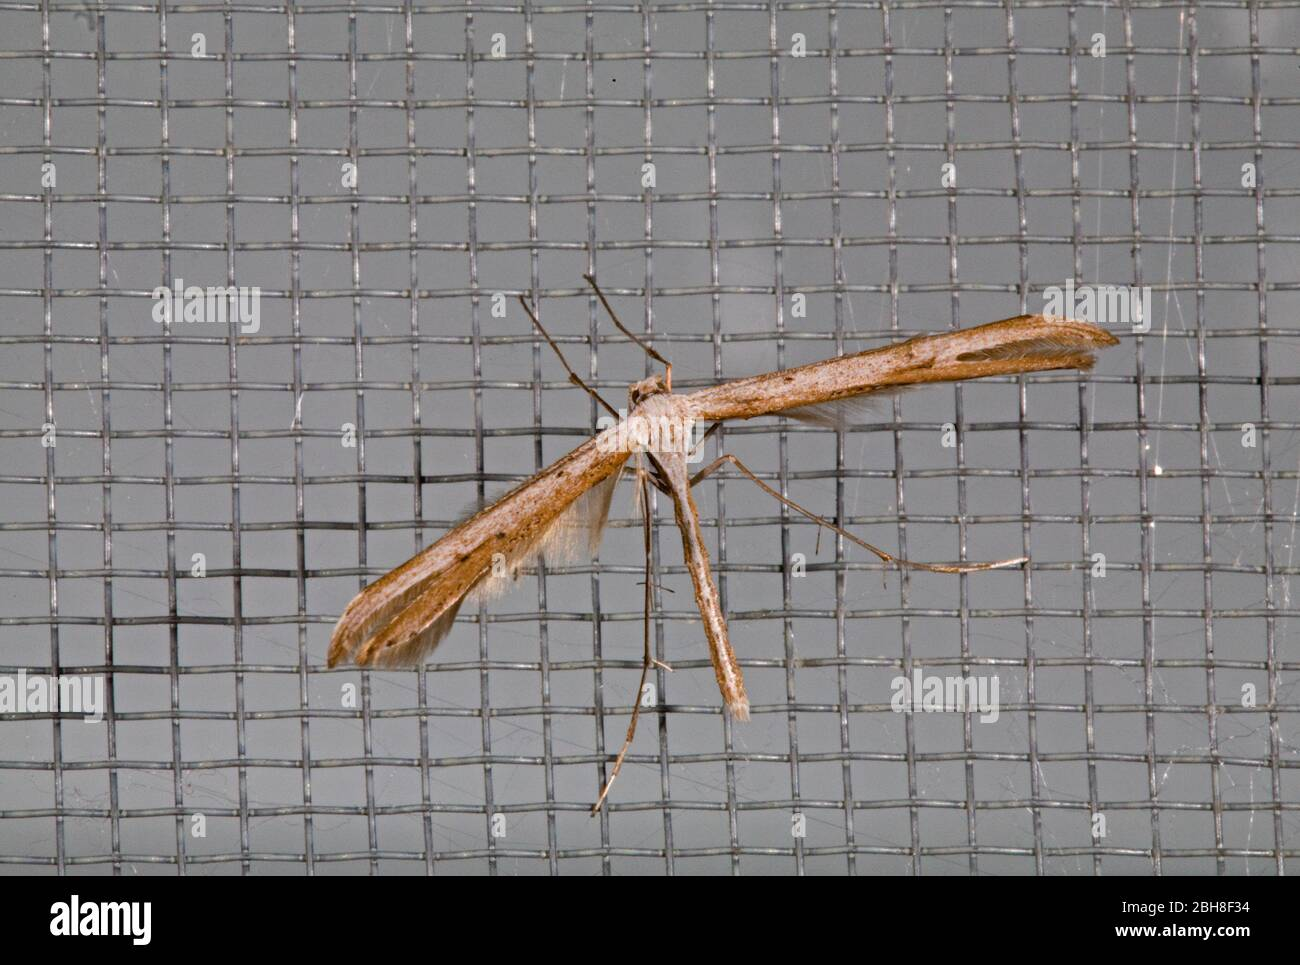 Portrait of a Plume Moth (Hellinsia homodactyla), a member of the micromoth family and only about half an inch long. Stock Photo